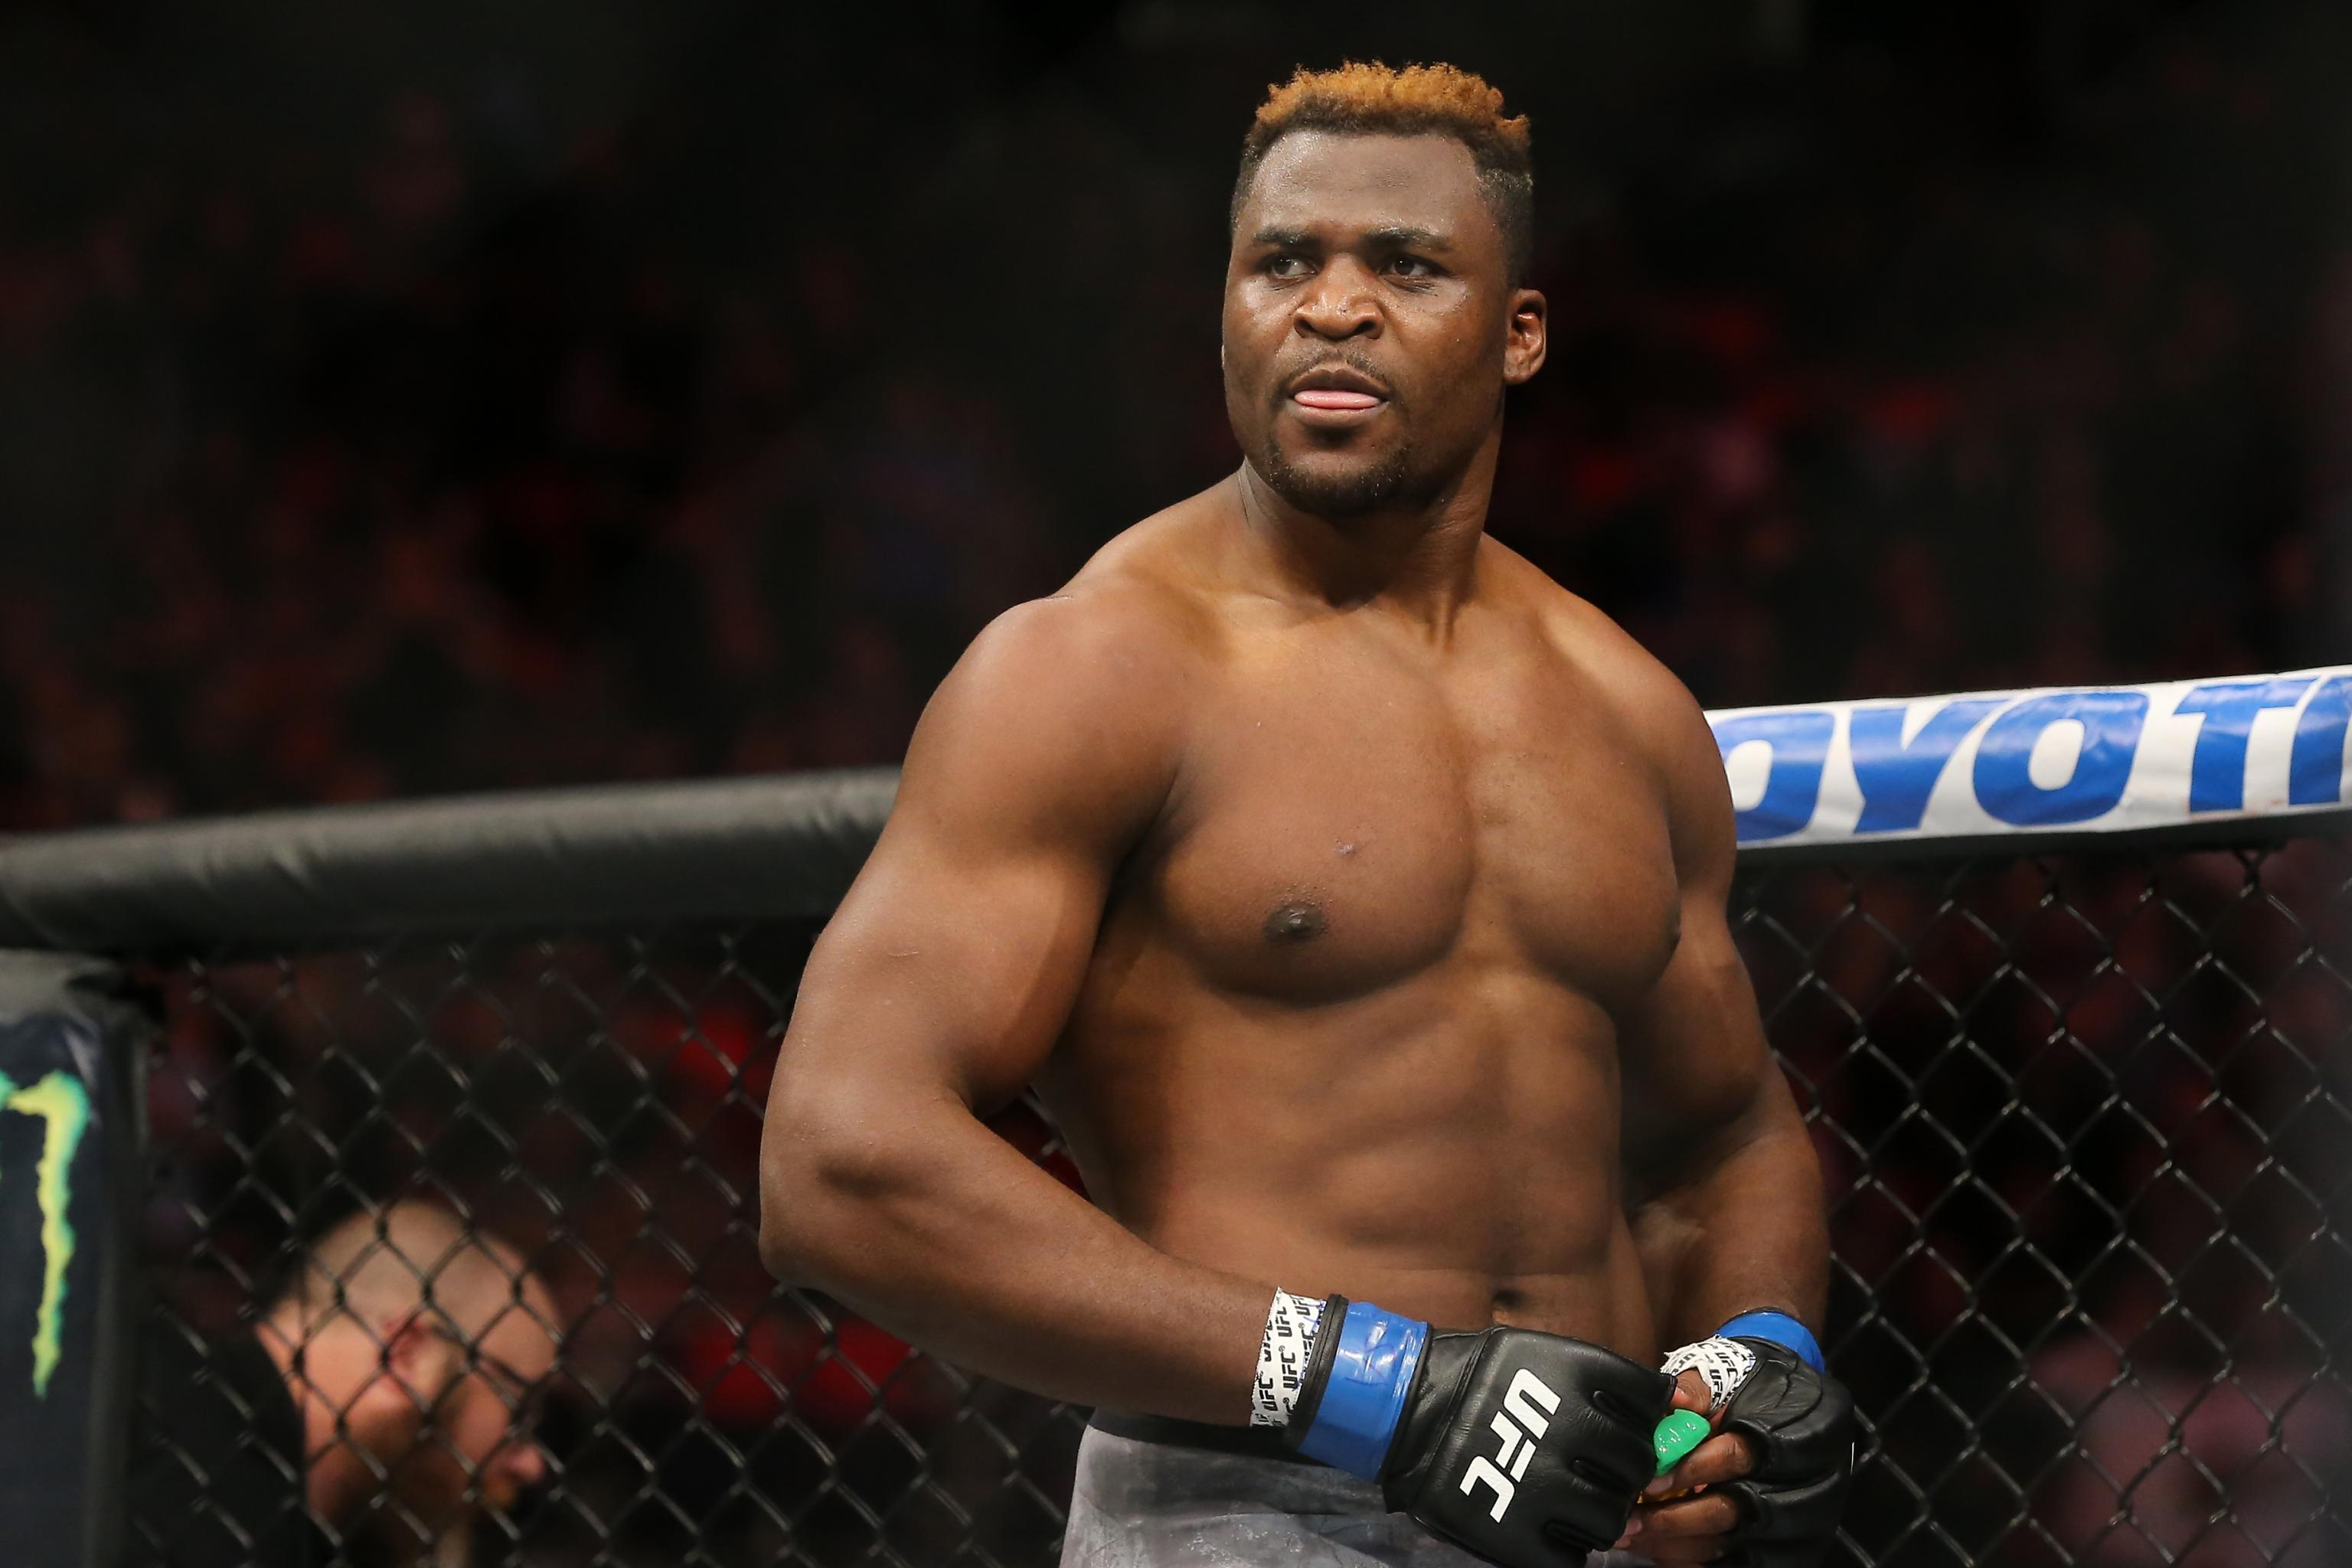 UFC News: Francis Ngannou confirms testing for all fighters and team members ahead of UFC 249 - Francis Ngannou